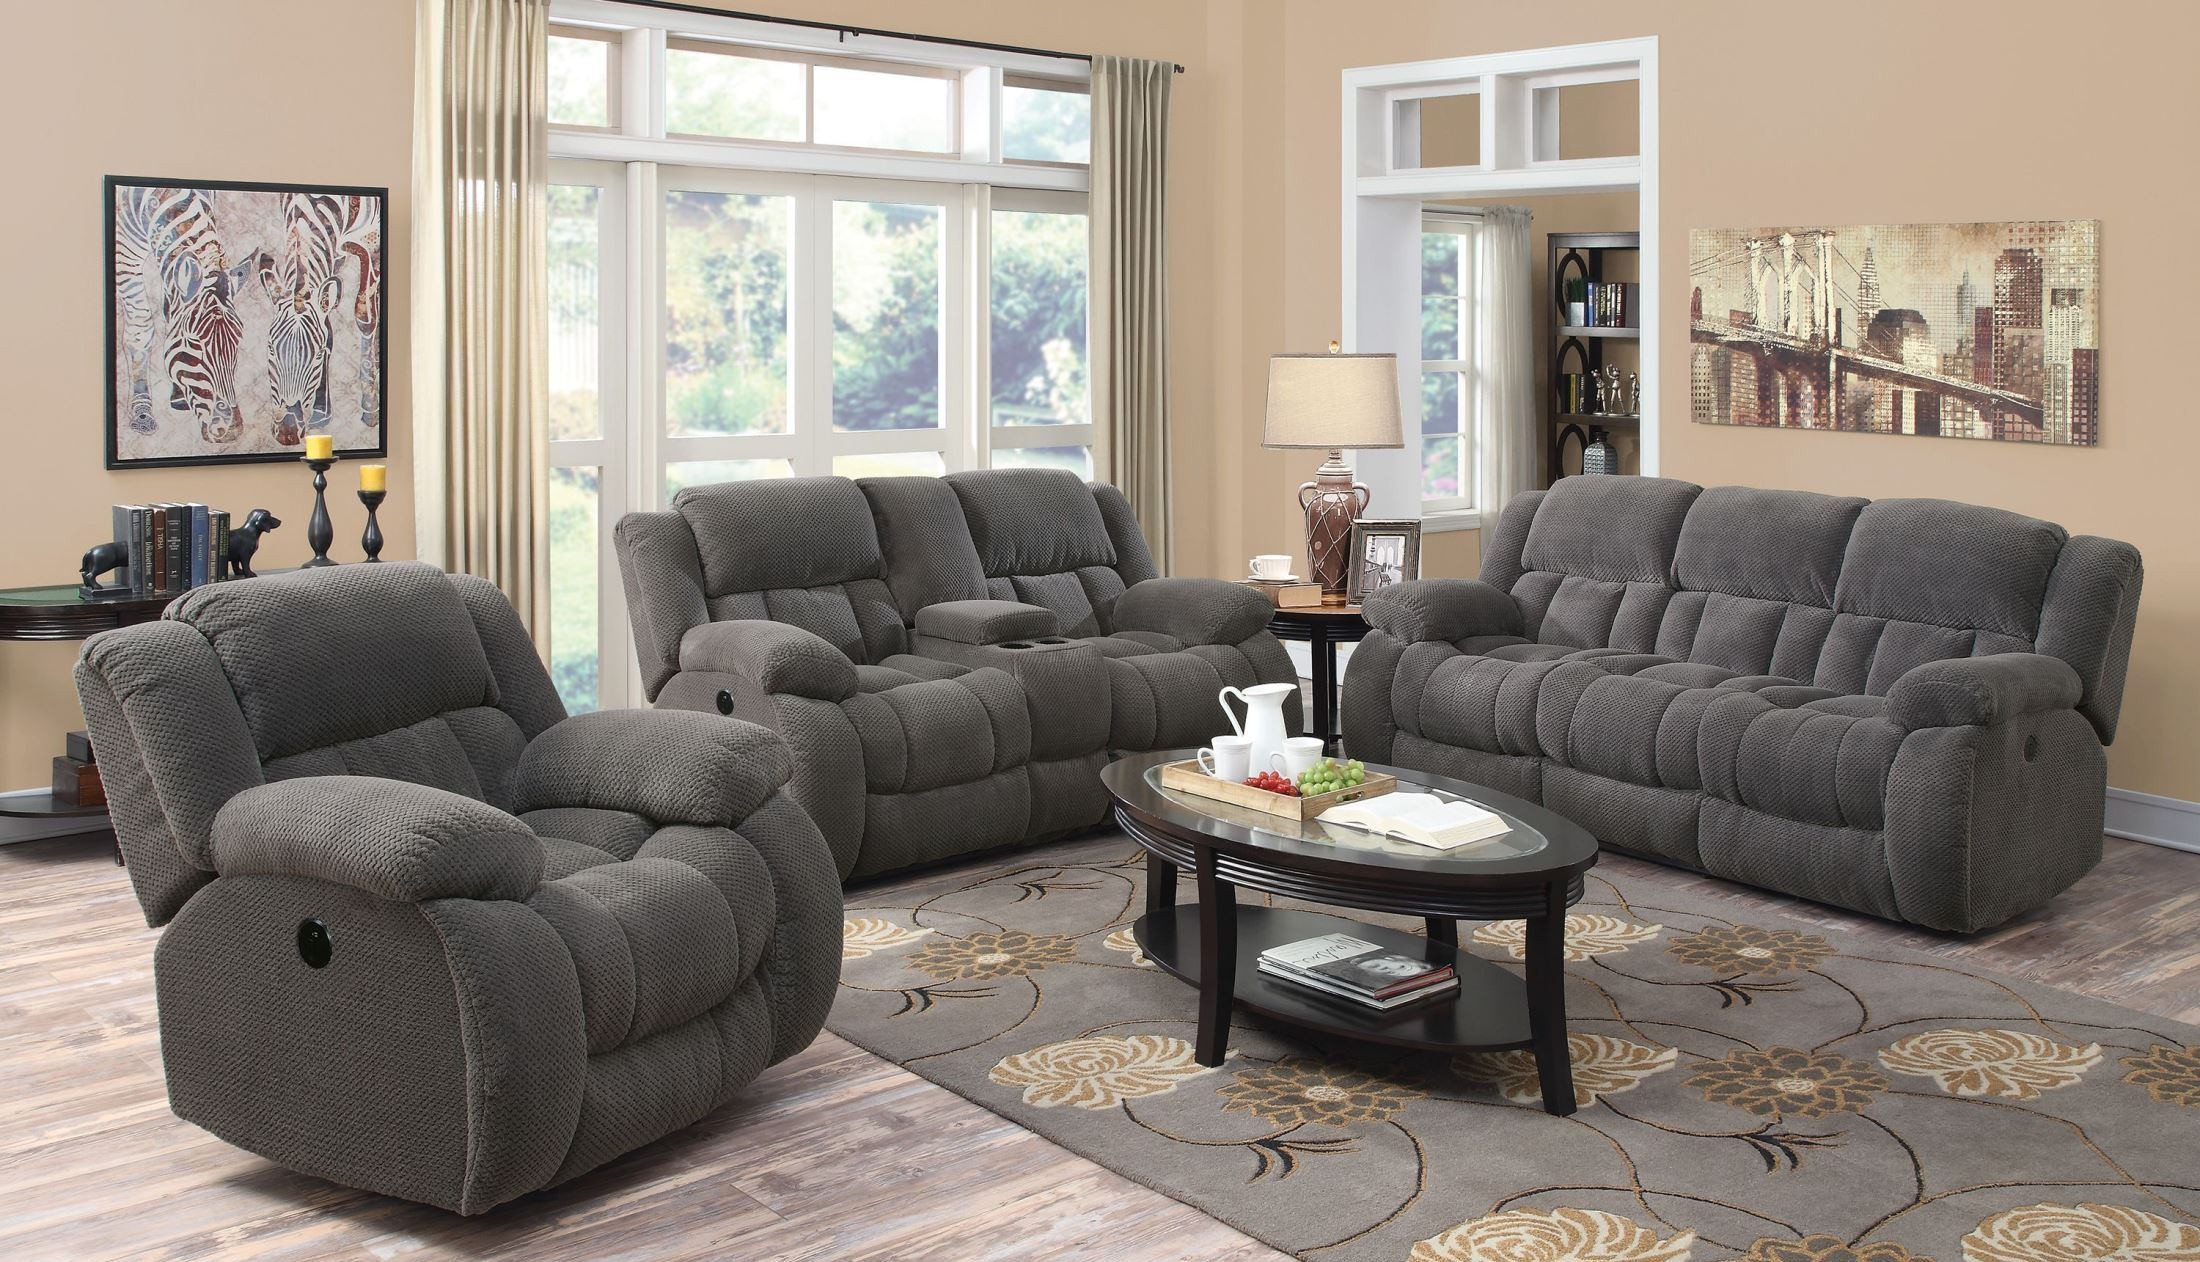 Weissman Charcoal Reclining Living Room Set From Coaster 601921 Coleman F